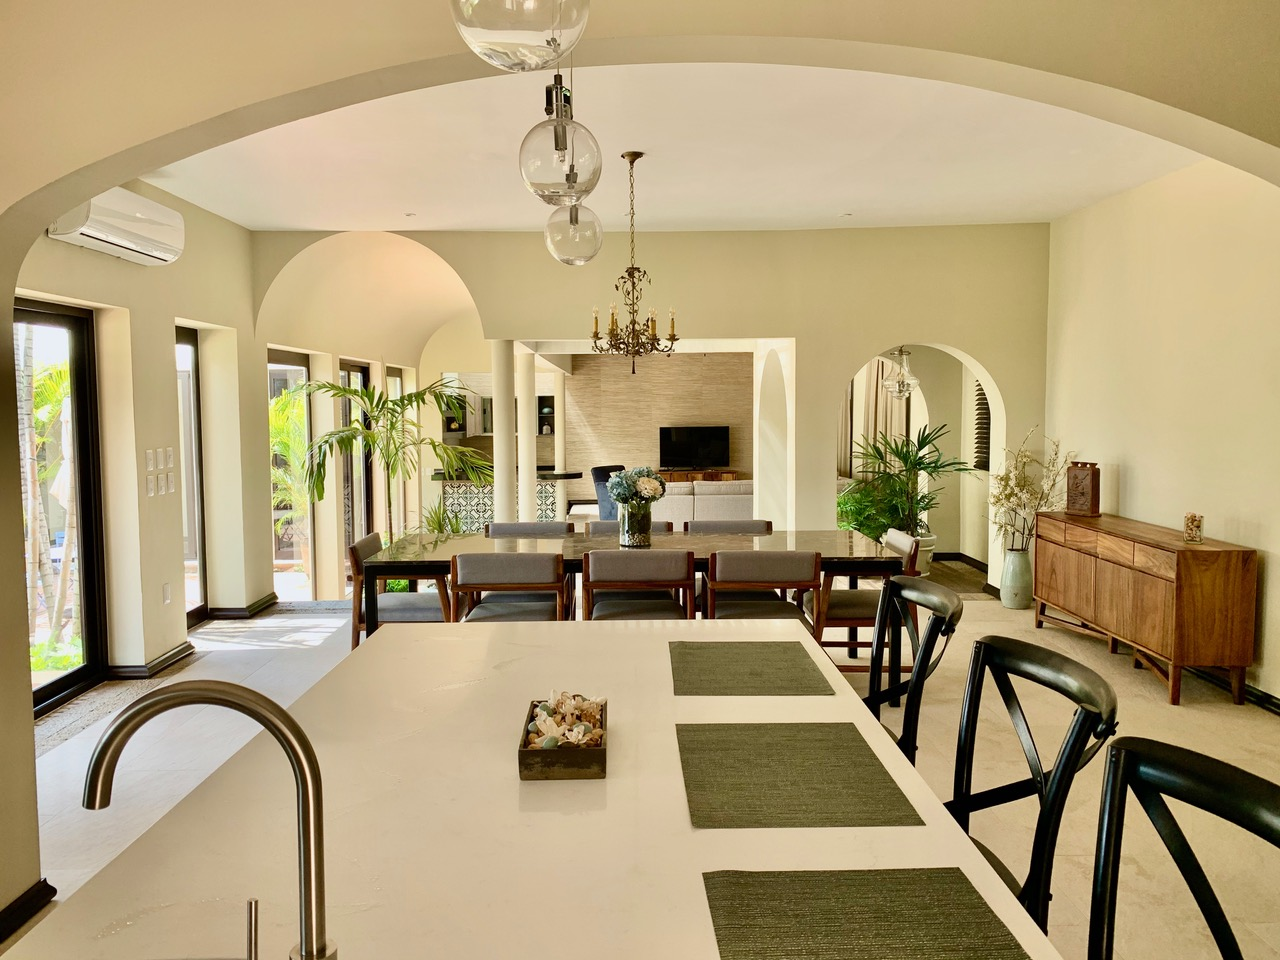 View from kitchen to dining room.